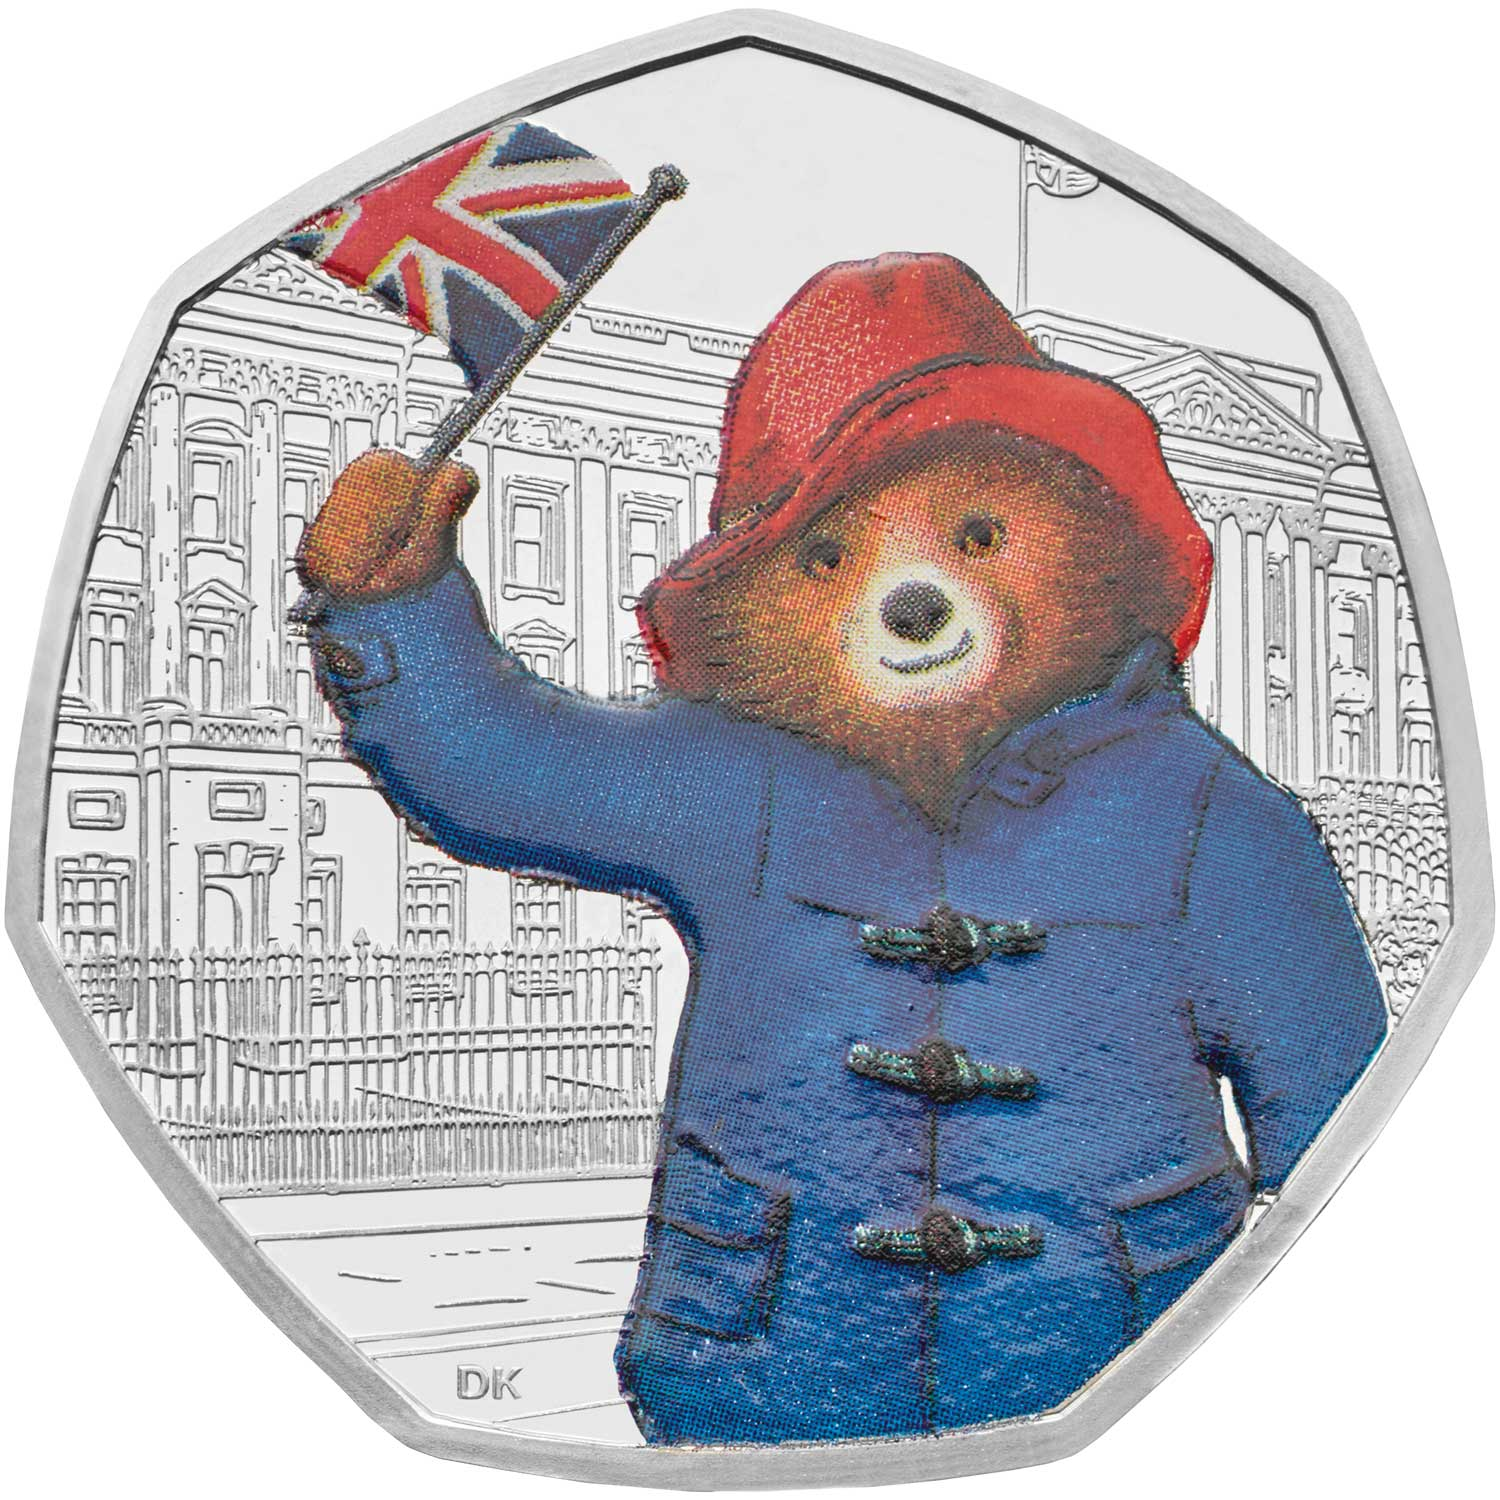 Fifty Pence 2018 Paddington Bear at Buckingham Palace: Photo Paddington at Buckingham Palace 2018 UK 50p Silver Proof Coin